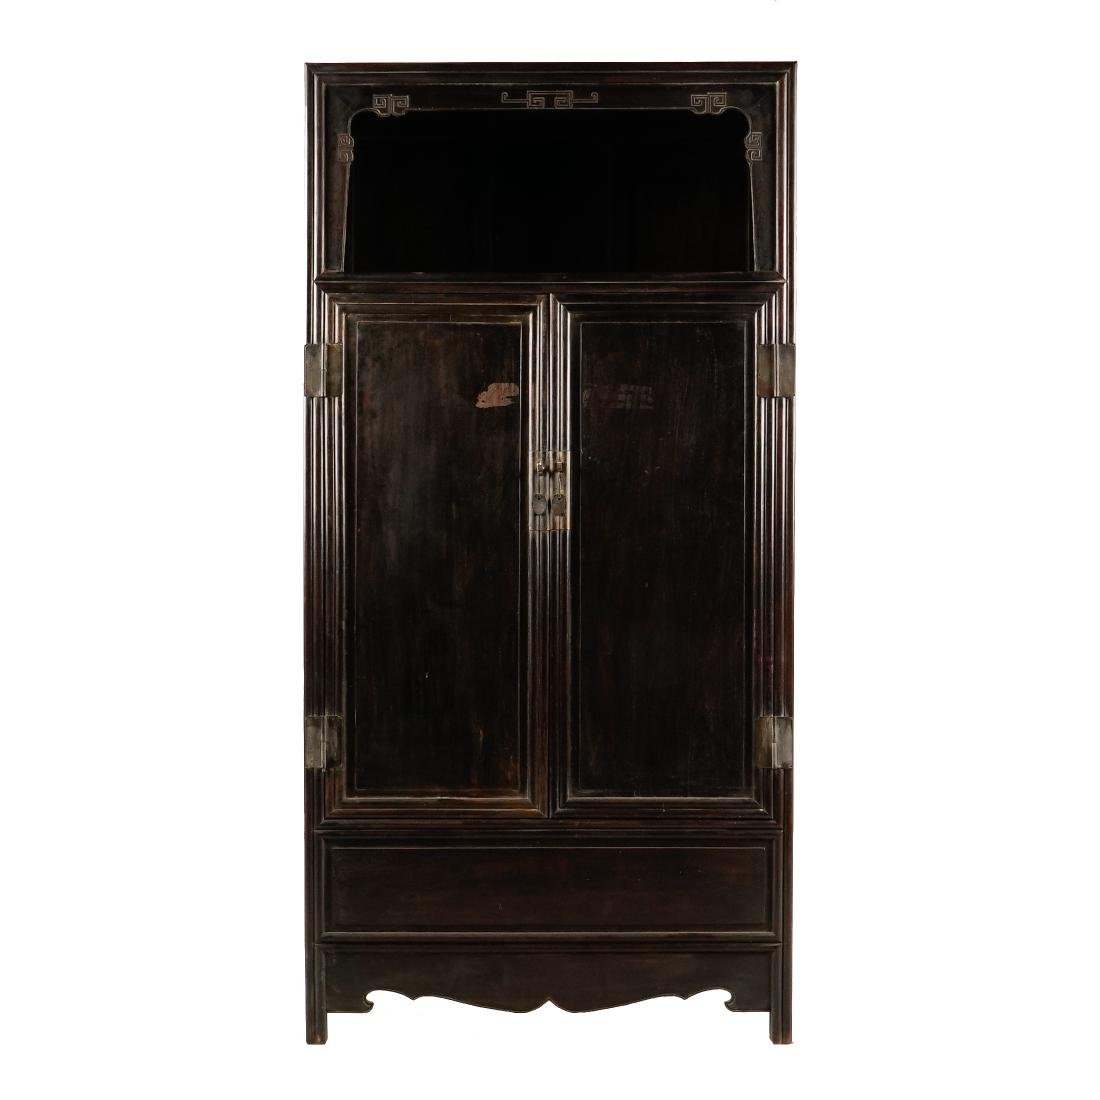 19TH C ANTIQUE CHINESE BRASS-MOUNTED ZITAN CABINET